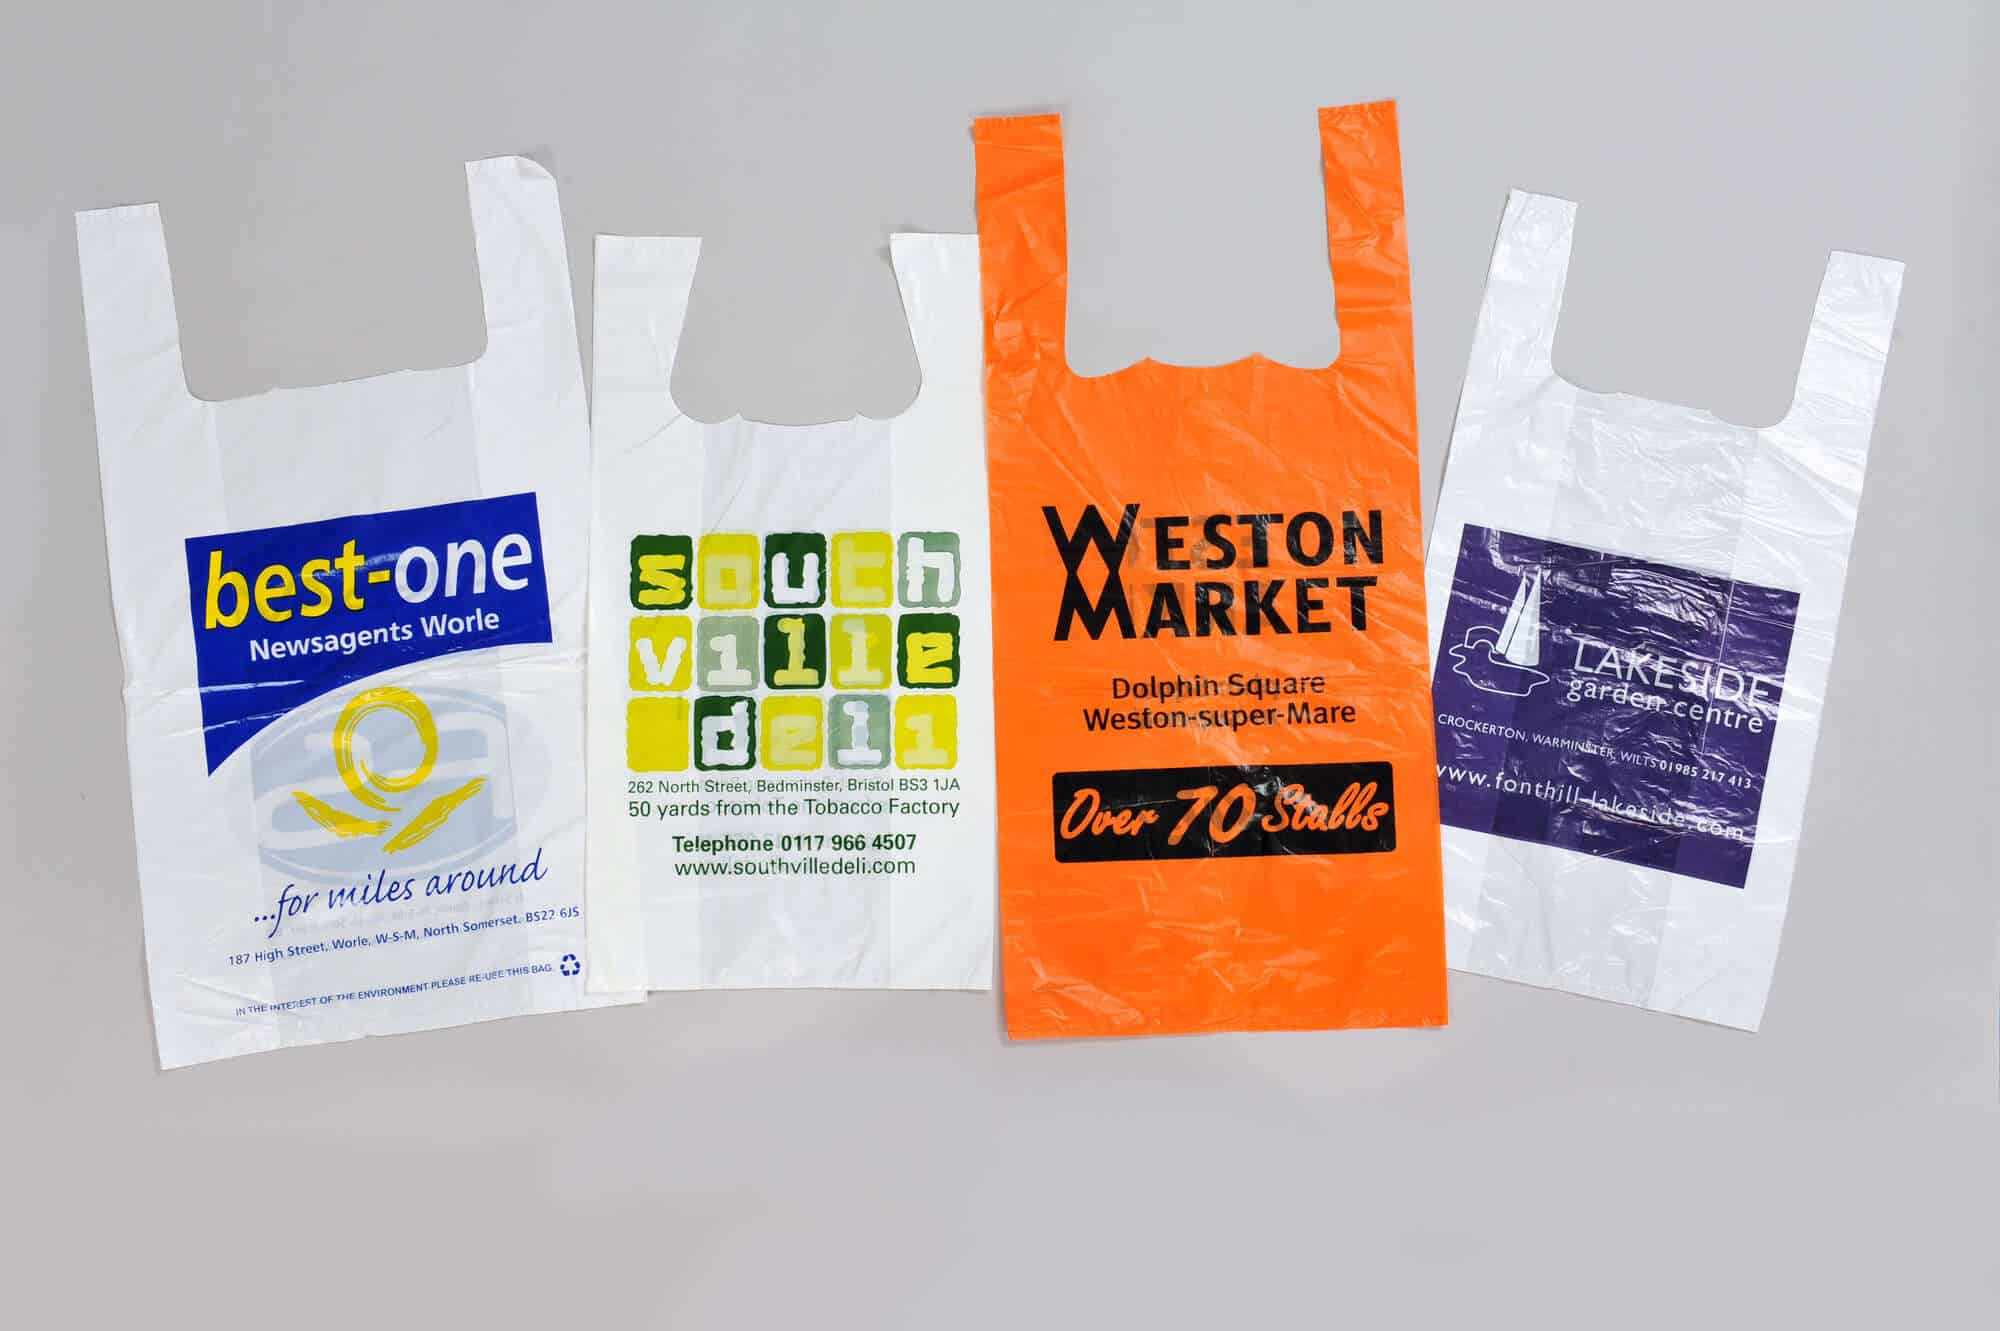 branded carrier bags supplier edinburgh wyatt ackerman wyatt